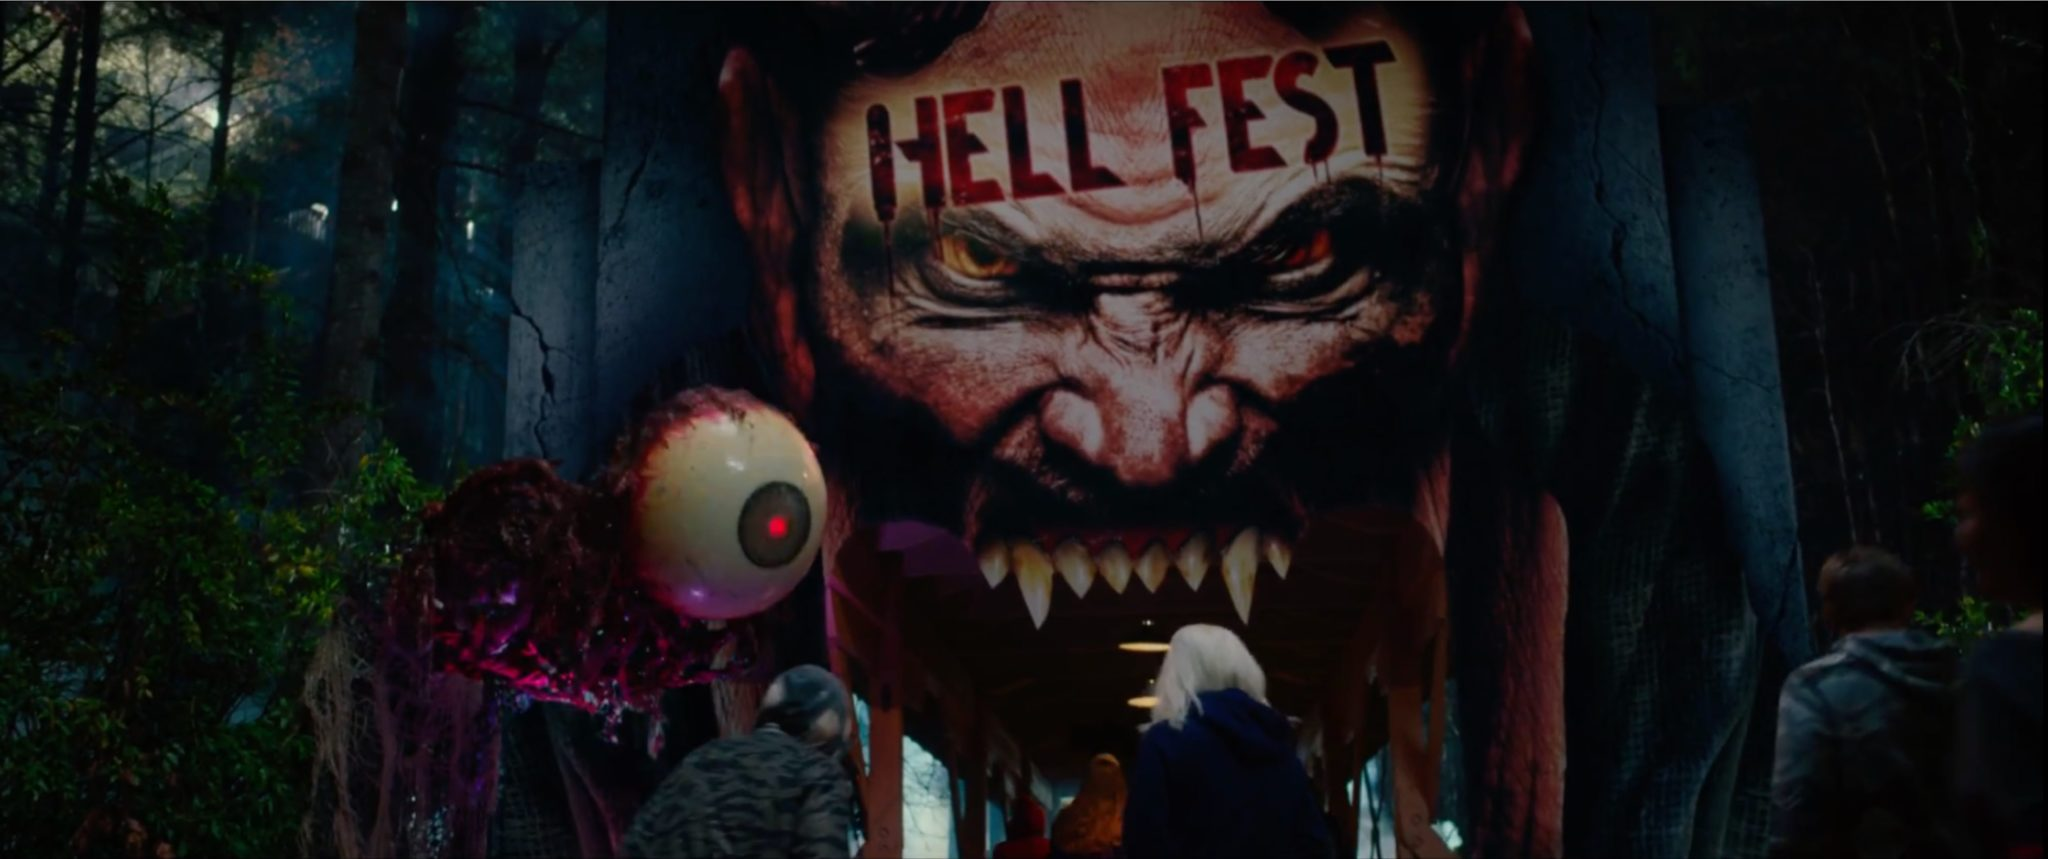 Hell Fest: Guida Su Come Non Fare Uno Slasher Movie - Recensione 3 - Hynerd.it